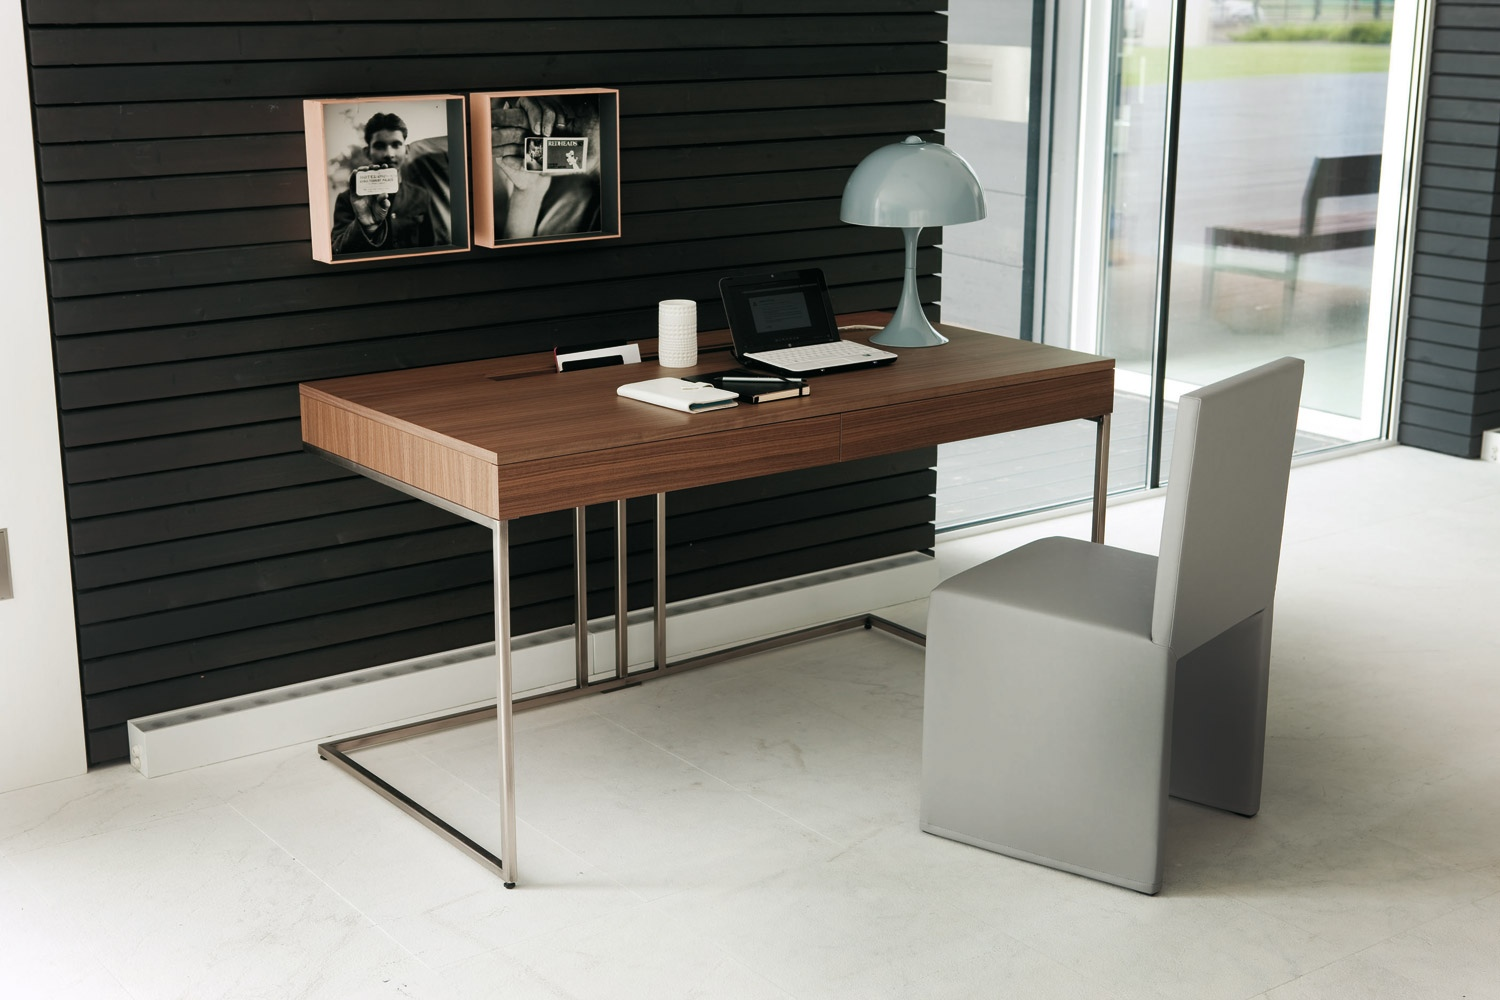 home desk chairs revolving chair in pune 30 inspirational office desks